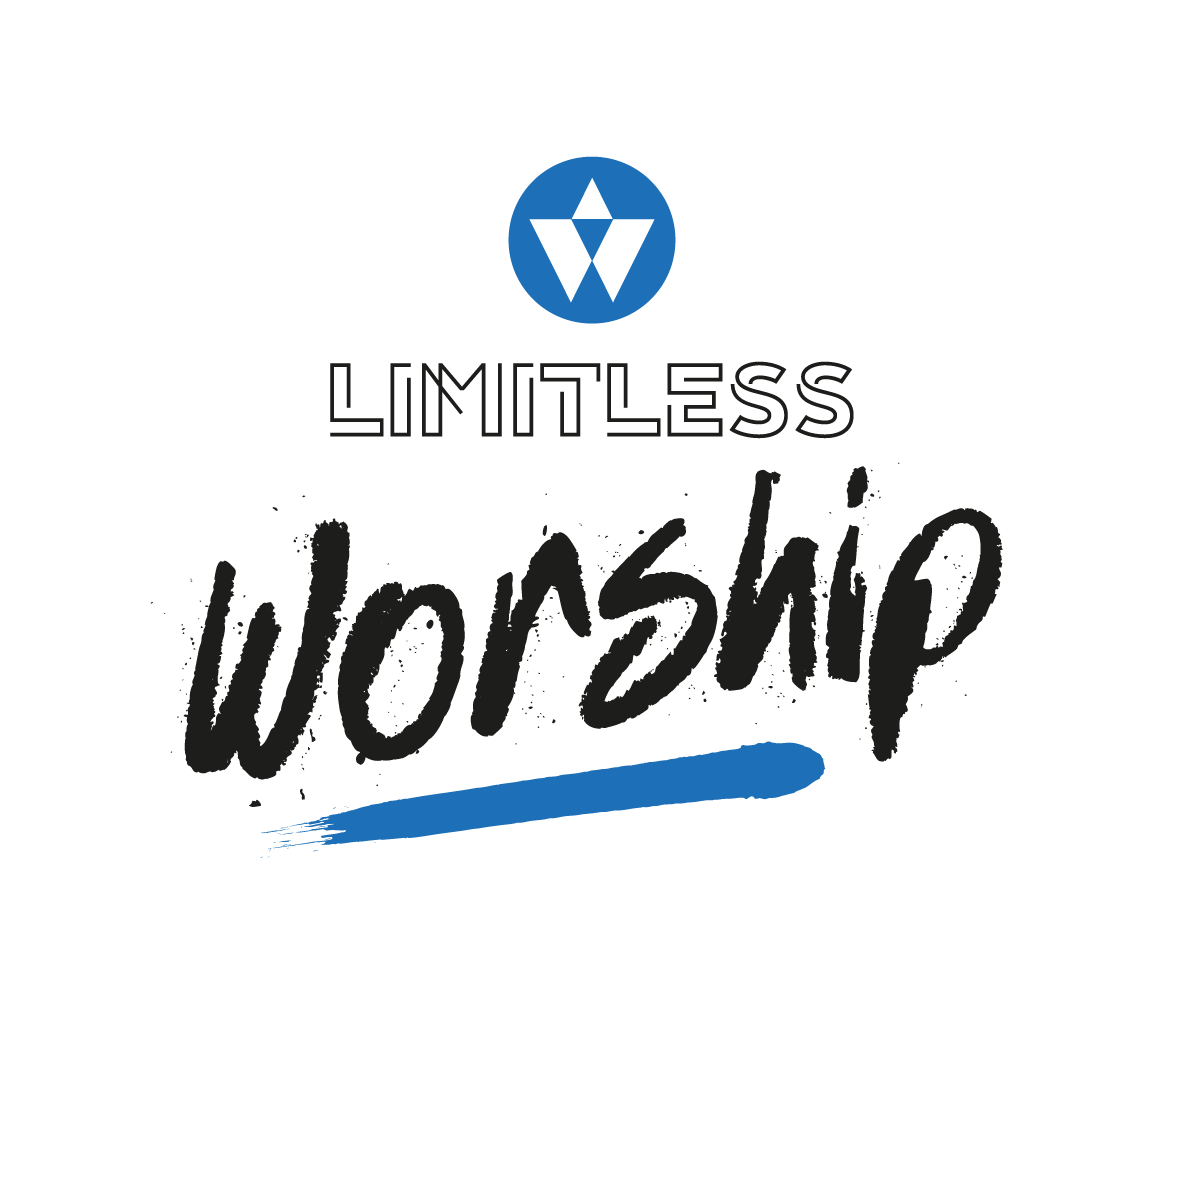 Limitless Worship White